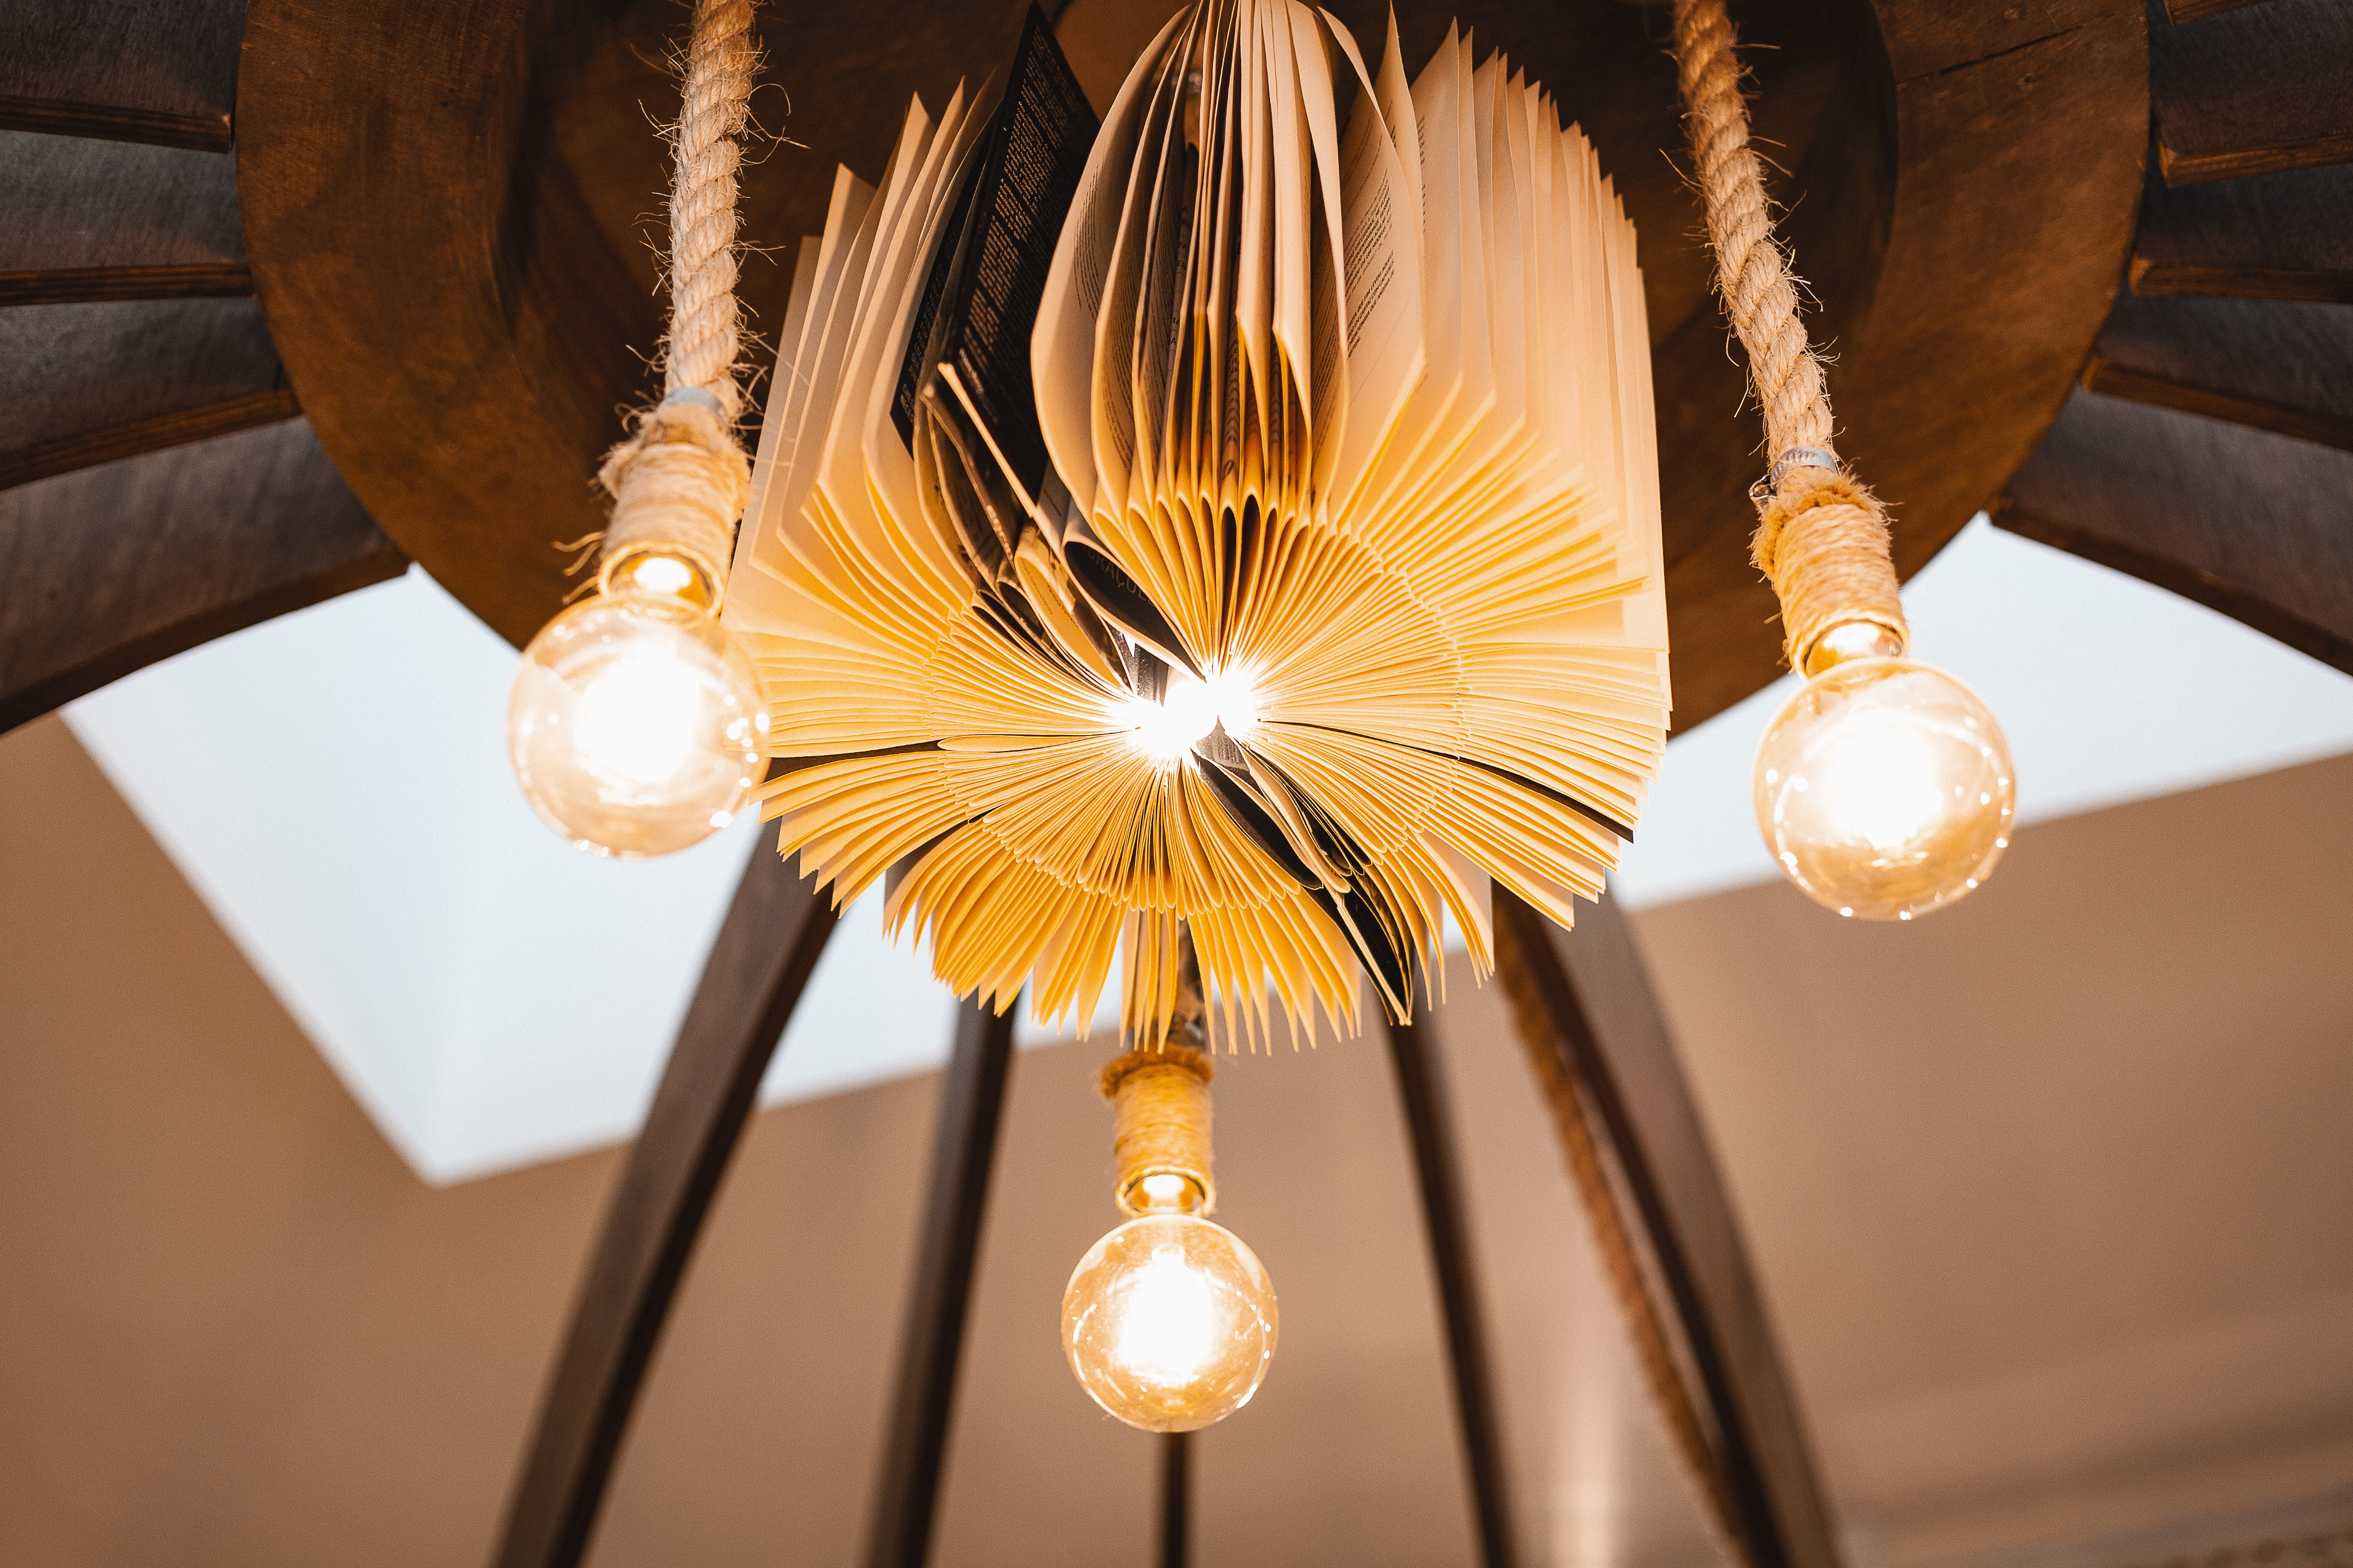 Lamp made of old books with hanging light bulbs